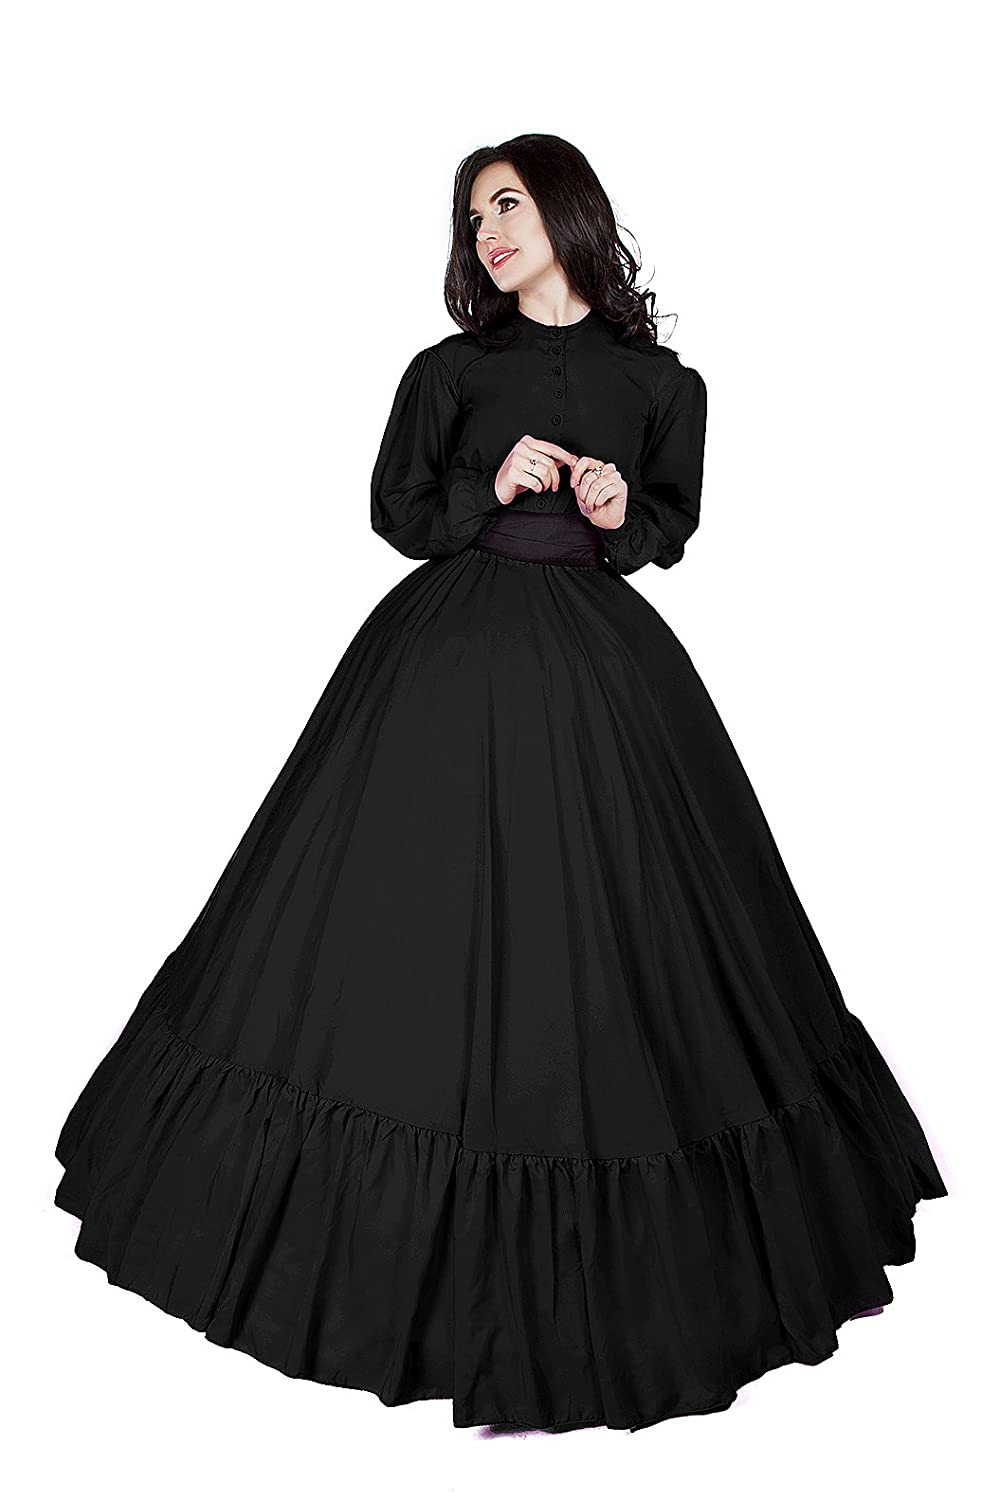 6ff5fbd241921 Victorian Costumes: Dresses, Saloon Girls, Southern Belle, Witch Civil War  Reenactment Victorian